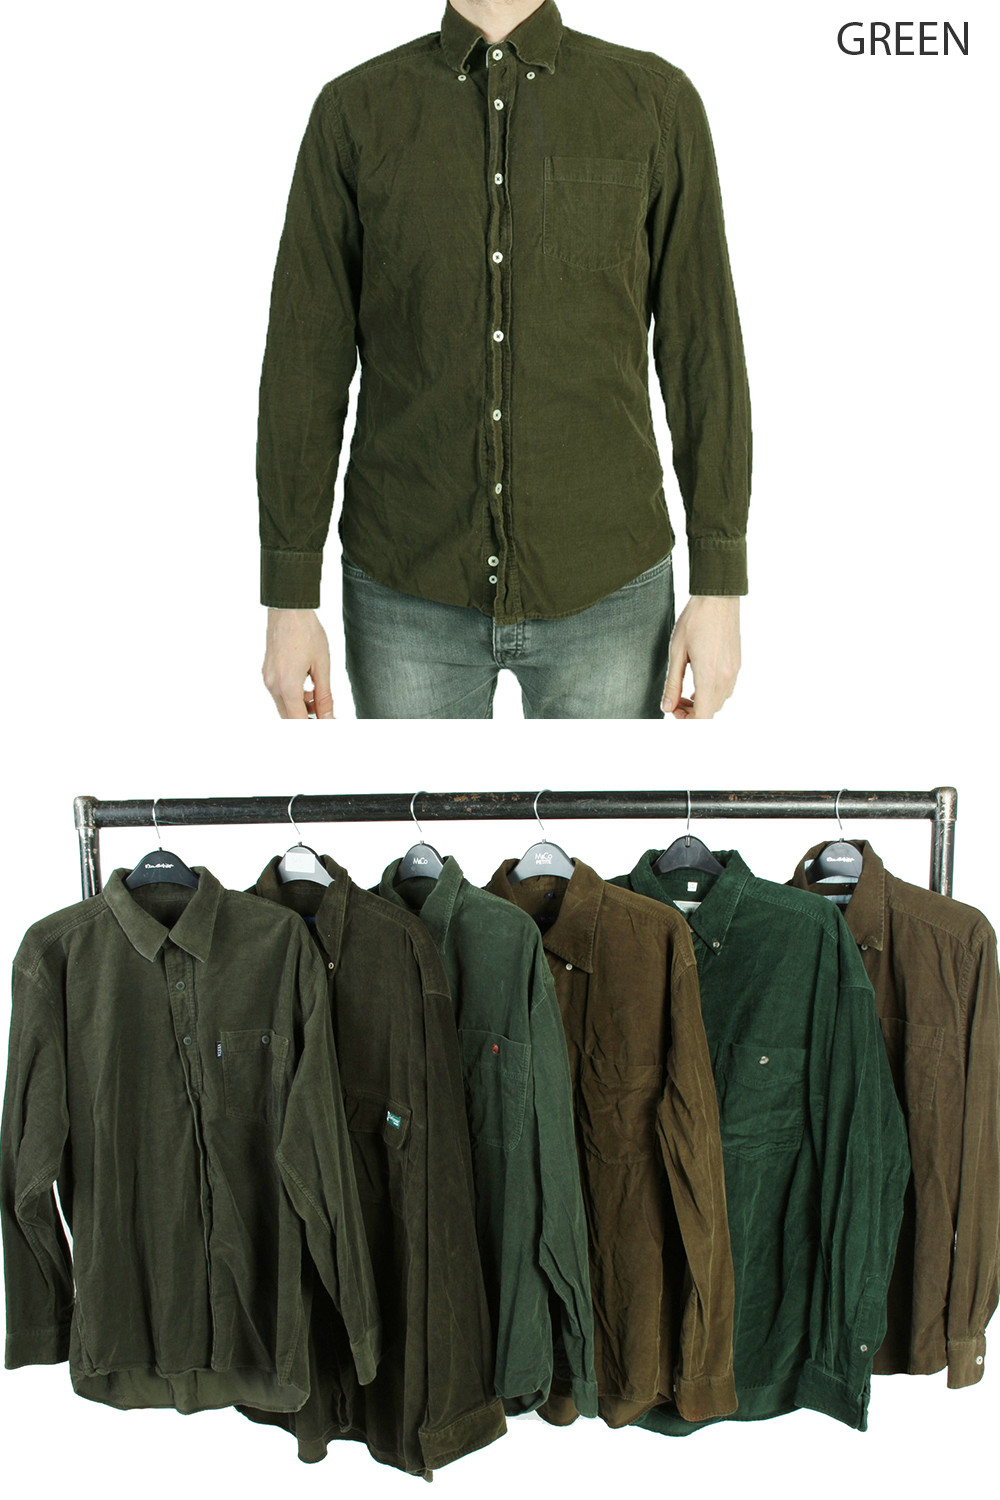 Best ideas about 90'S Short Hairstyles . Save or Pin Vintage Corduroy Shirts 90 s Long Sleeve Retro S M L XL Now.